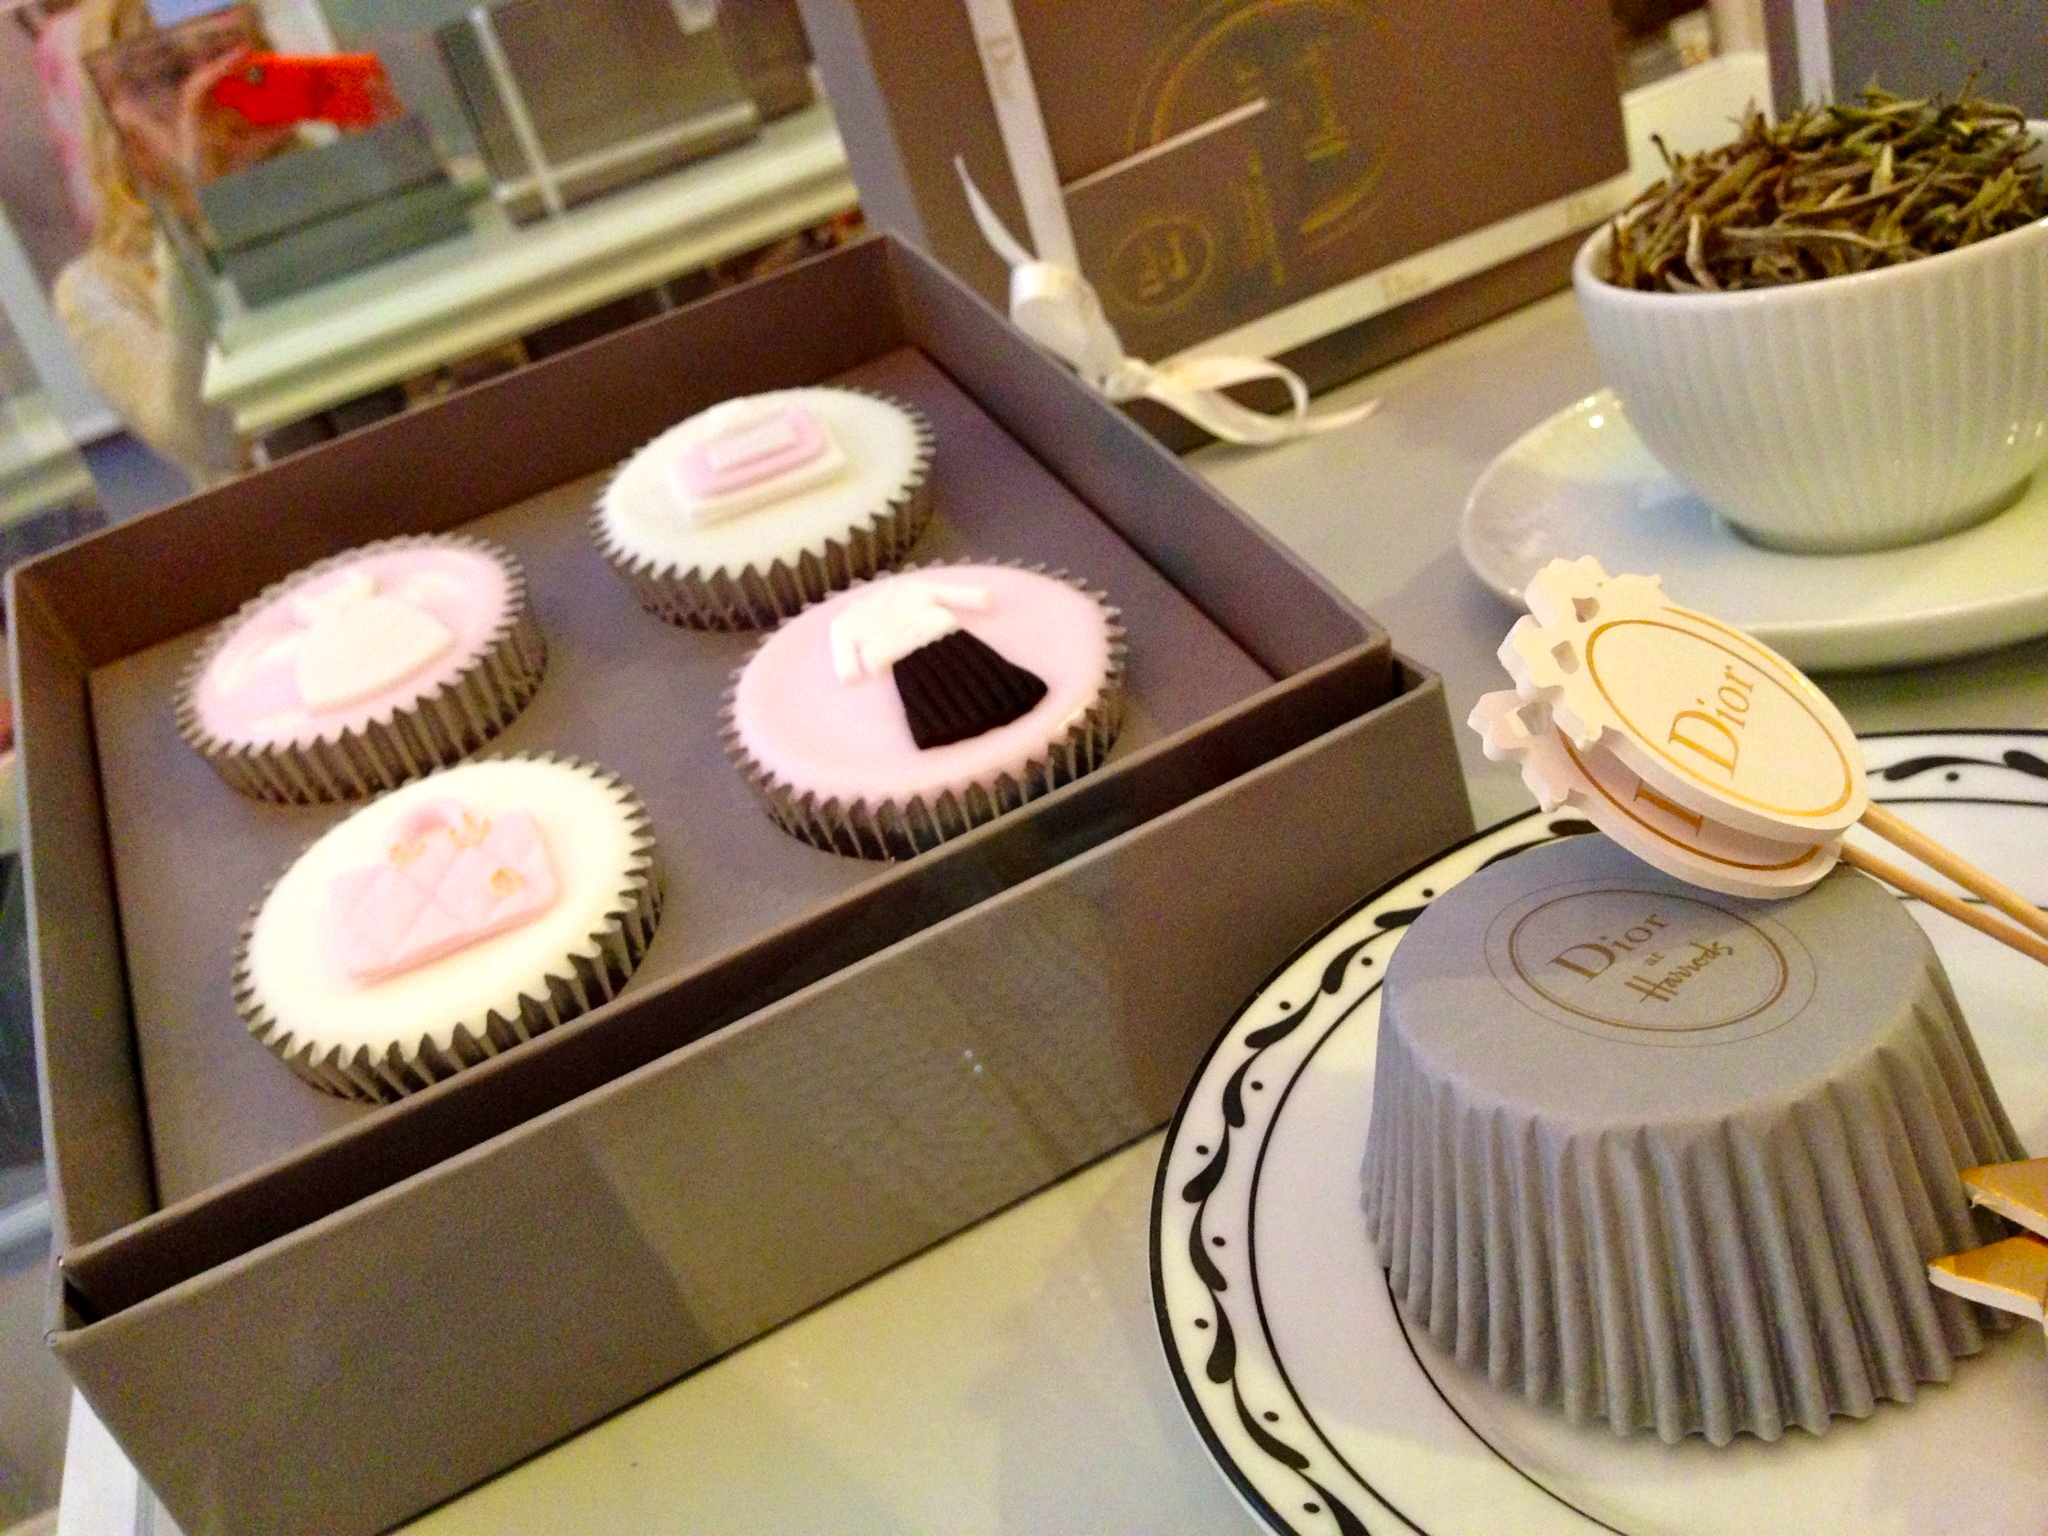 dior cup cakes